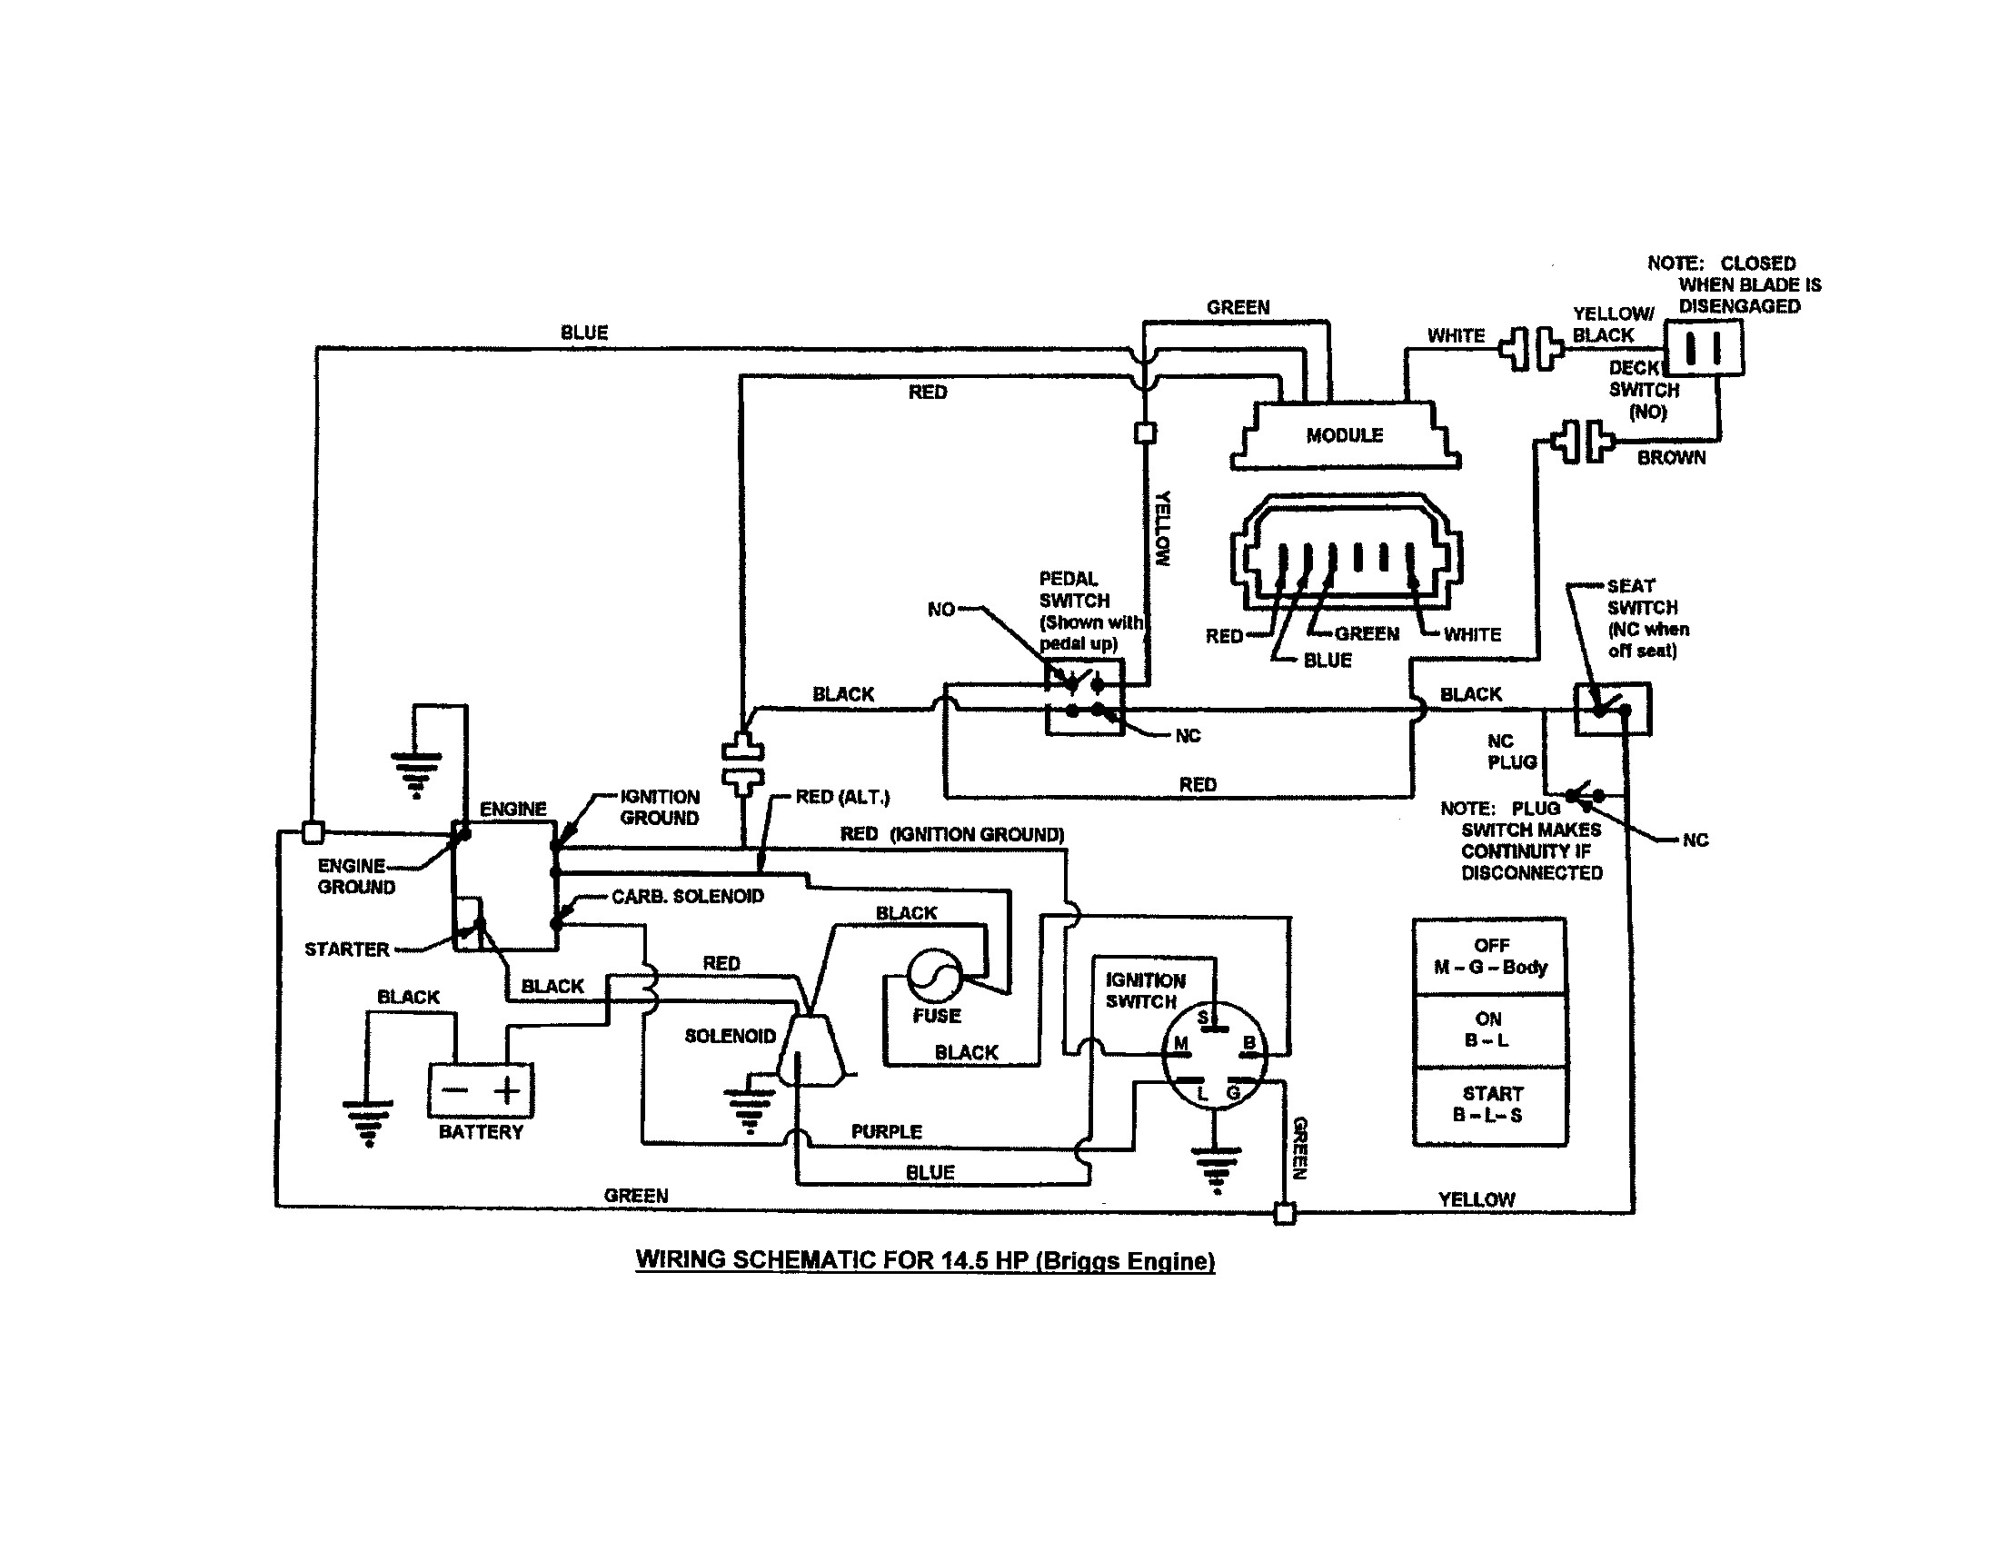 hight resolution of wiring diagram for murray riding lawn mower solenoid free wiringwiring diagram for murray riding lawn mower